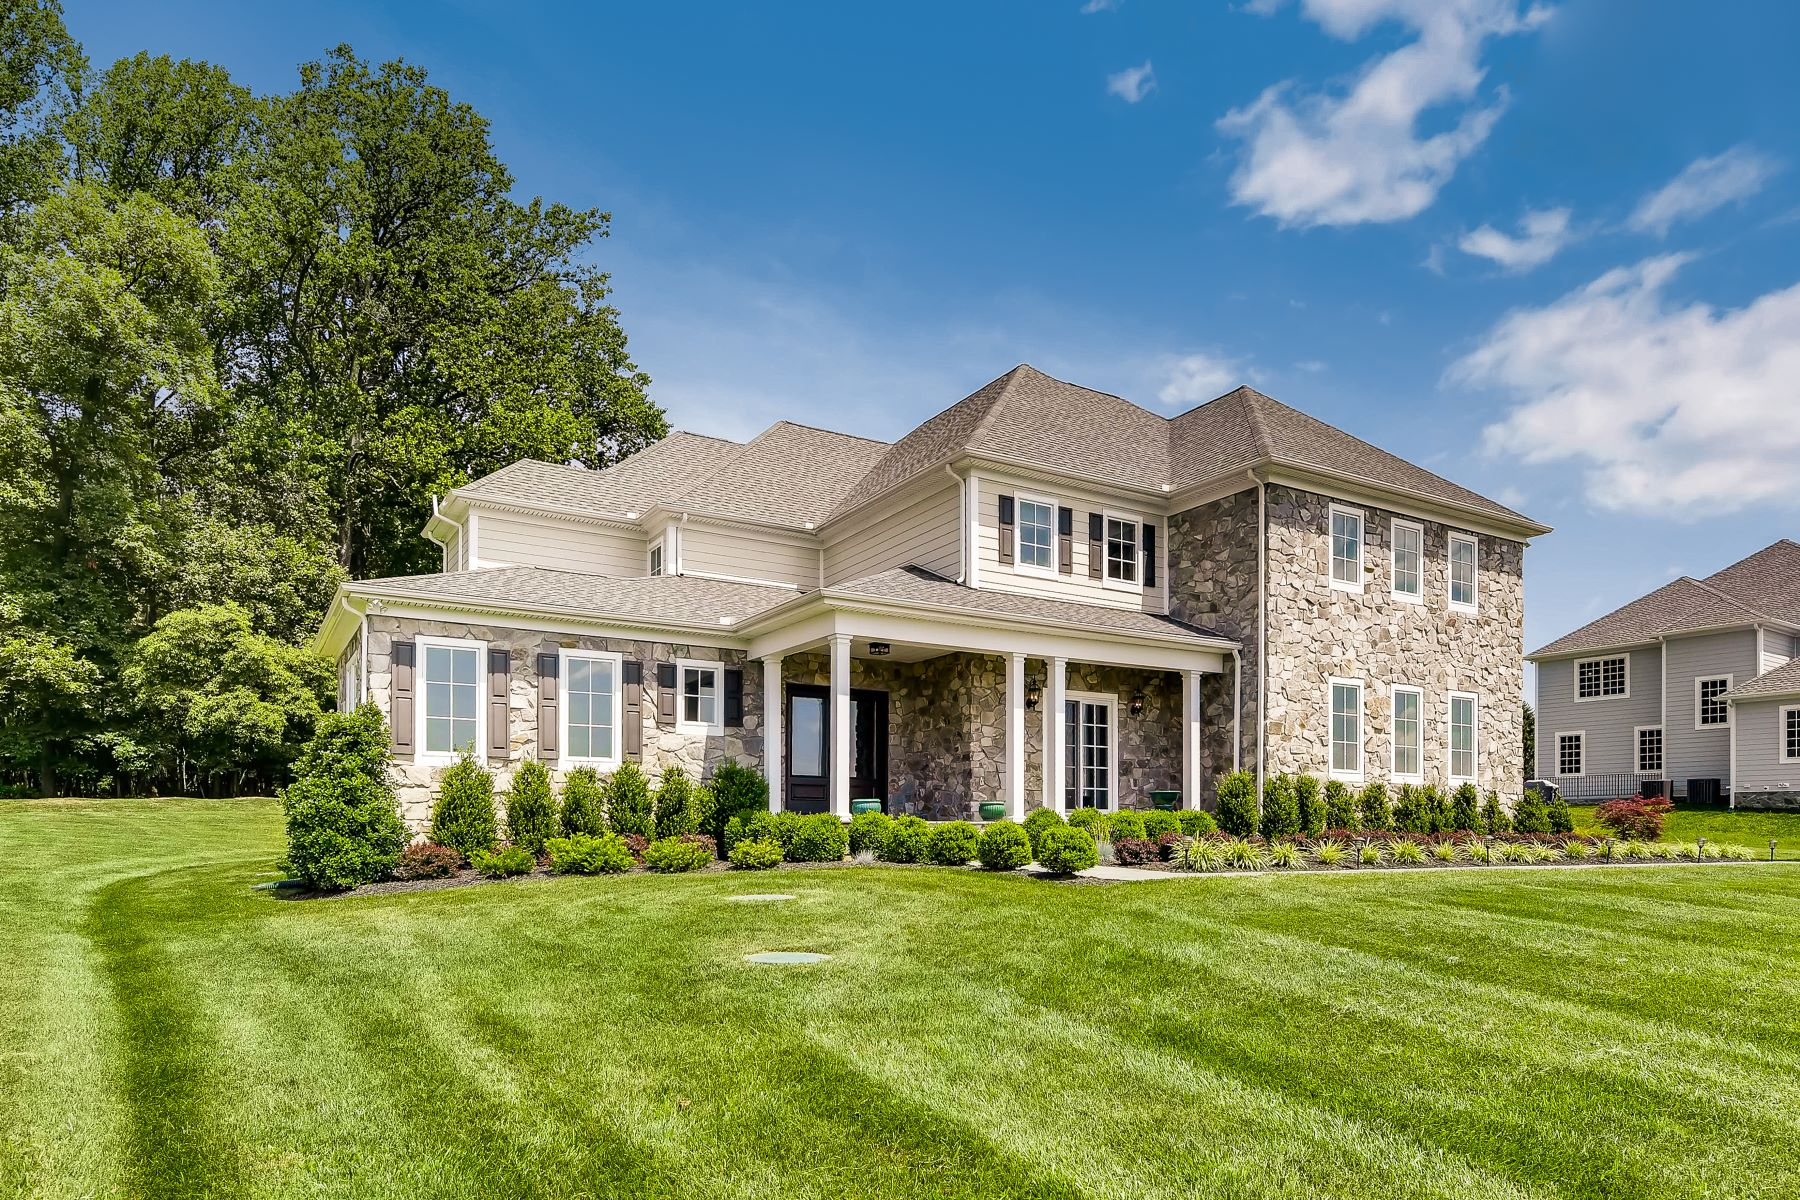 Single Family Homes for Sale at Phoenix 13308 Brighton View Court Phoenix, Maryland 21131 United States